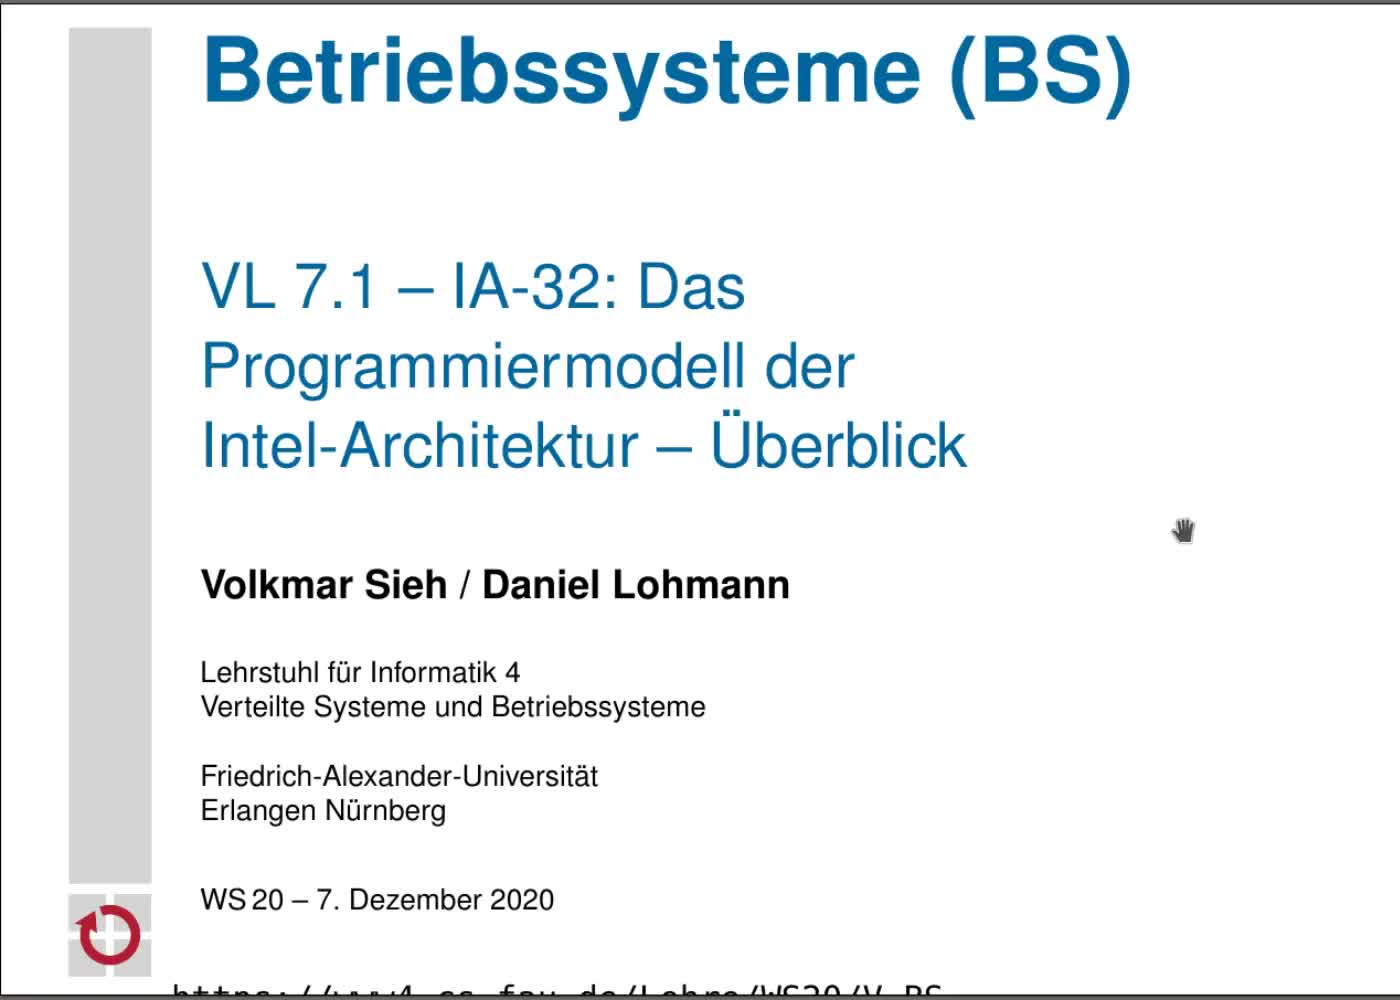 Überblick preview image